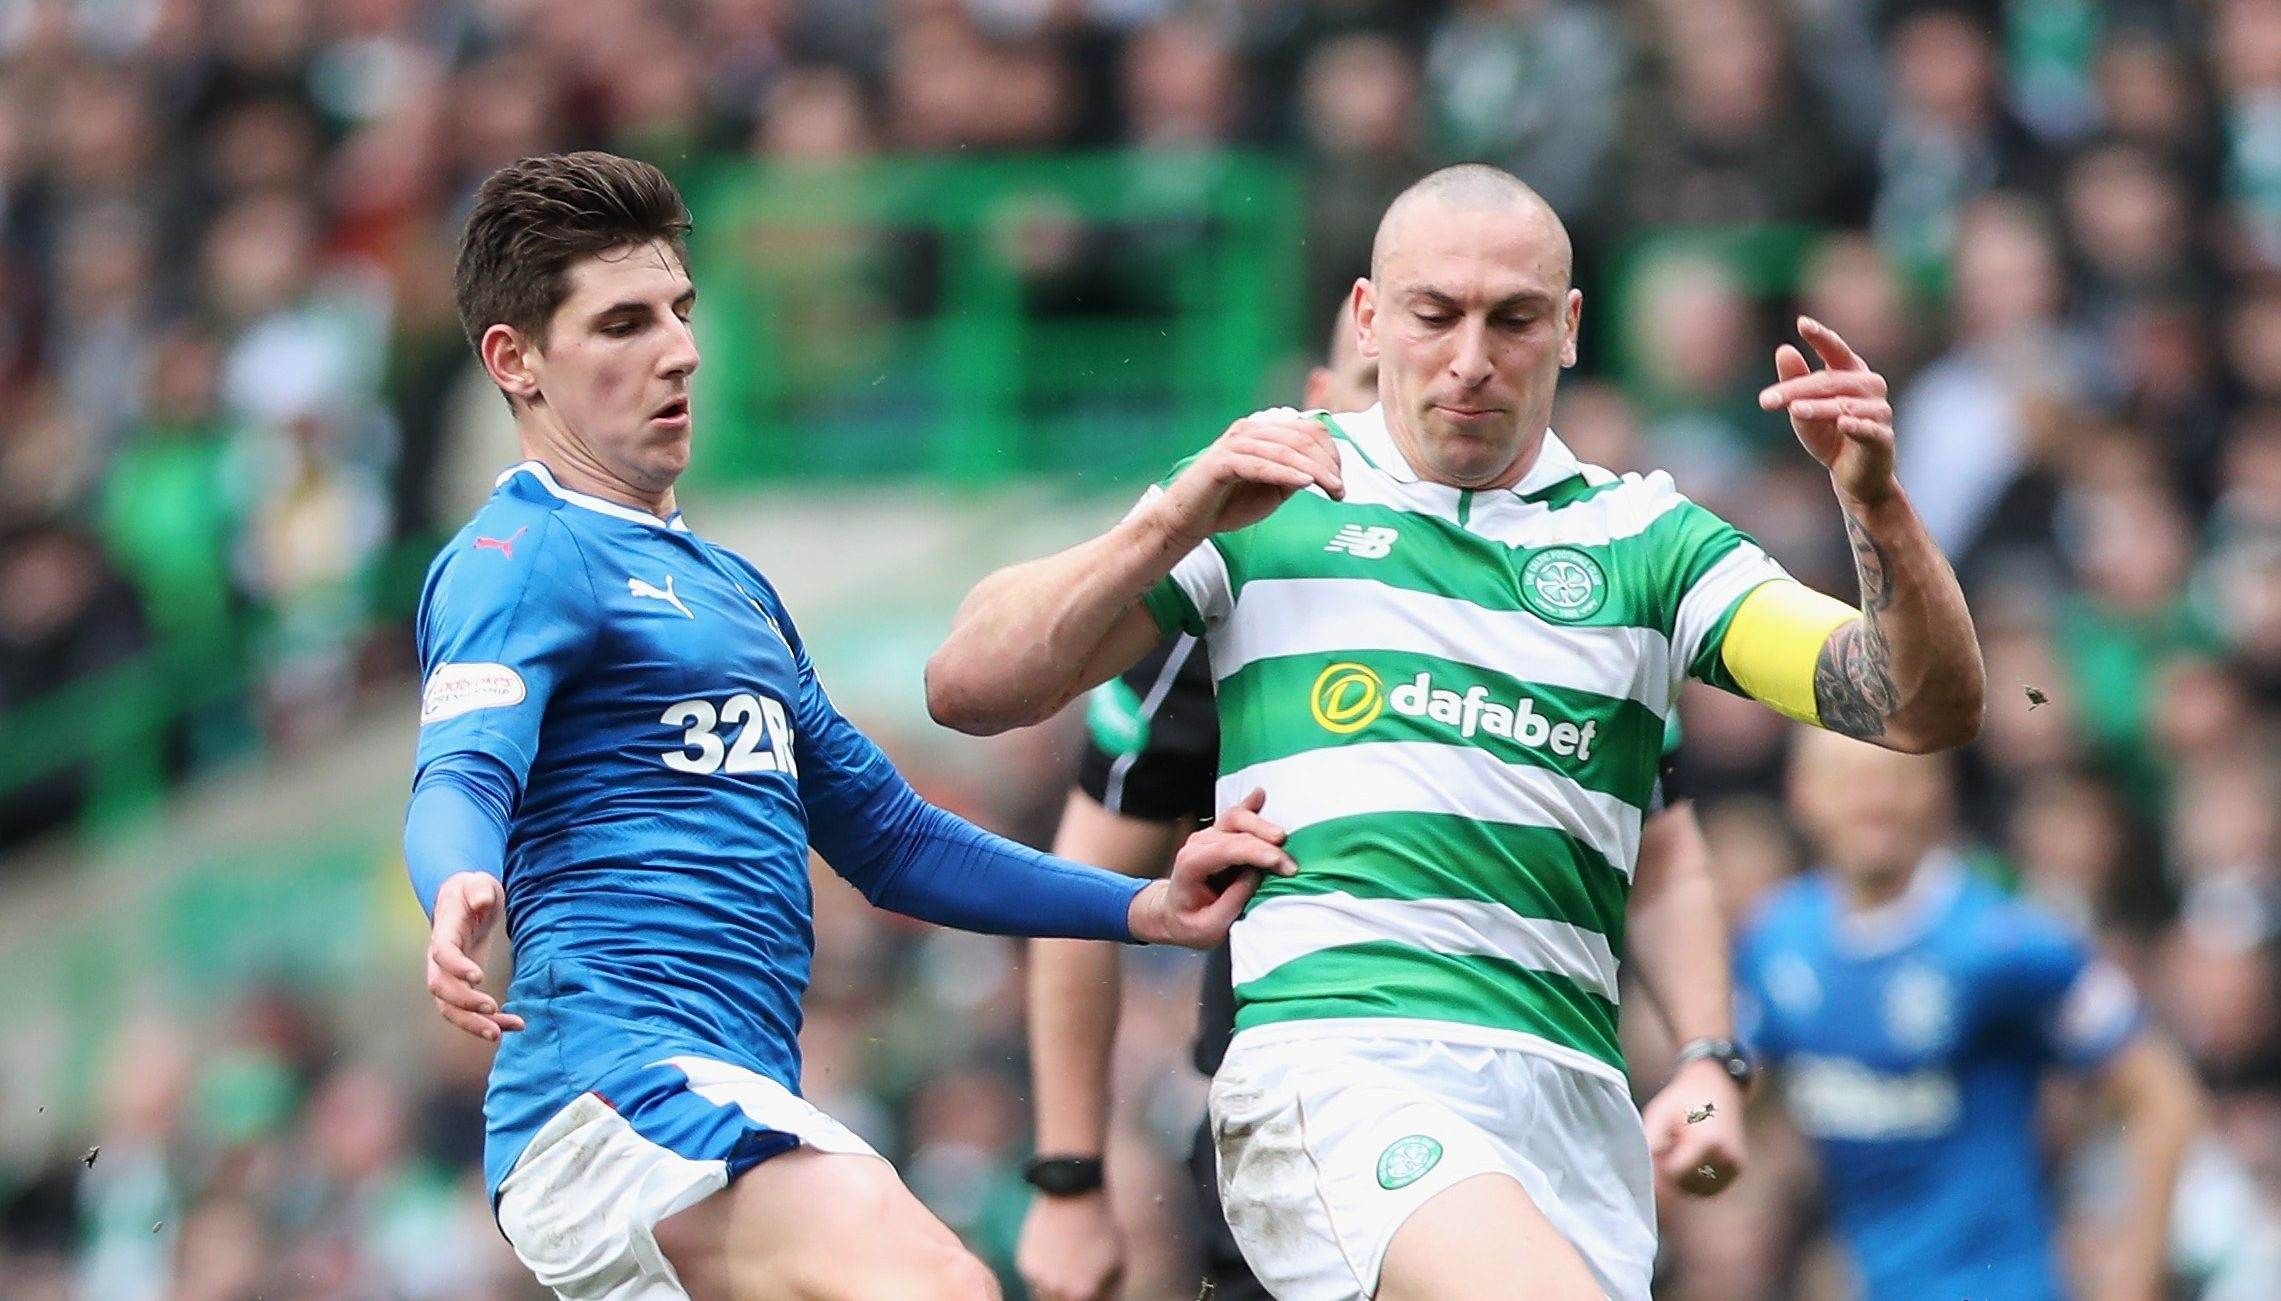 Emerson Hyndman of Rangers (L) and Scott Brown of Celtic (R) battle for possession (Ian MacNicol/Getty Images)